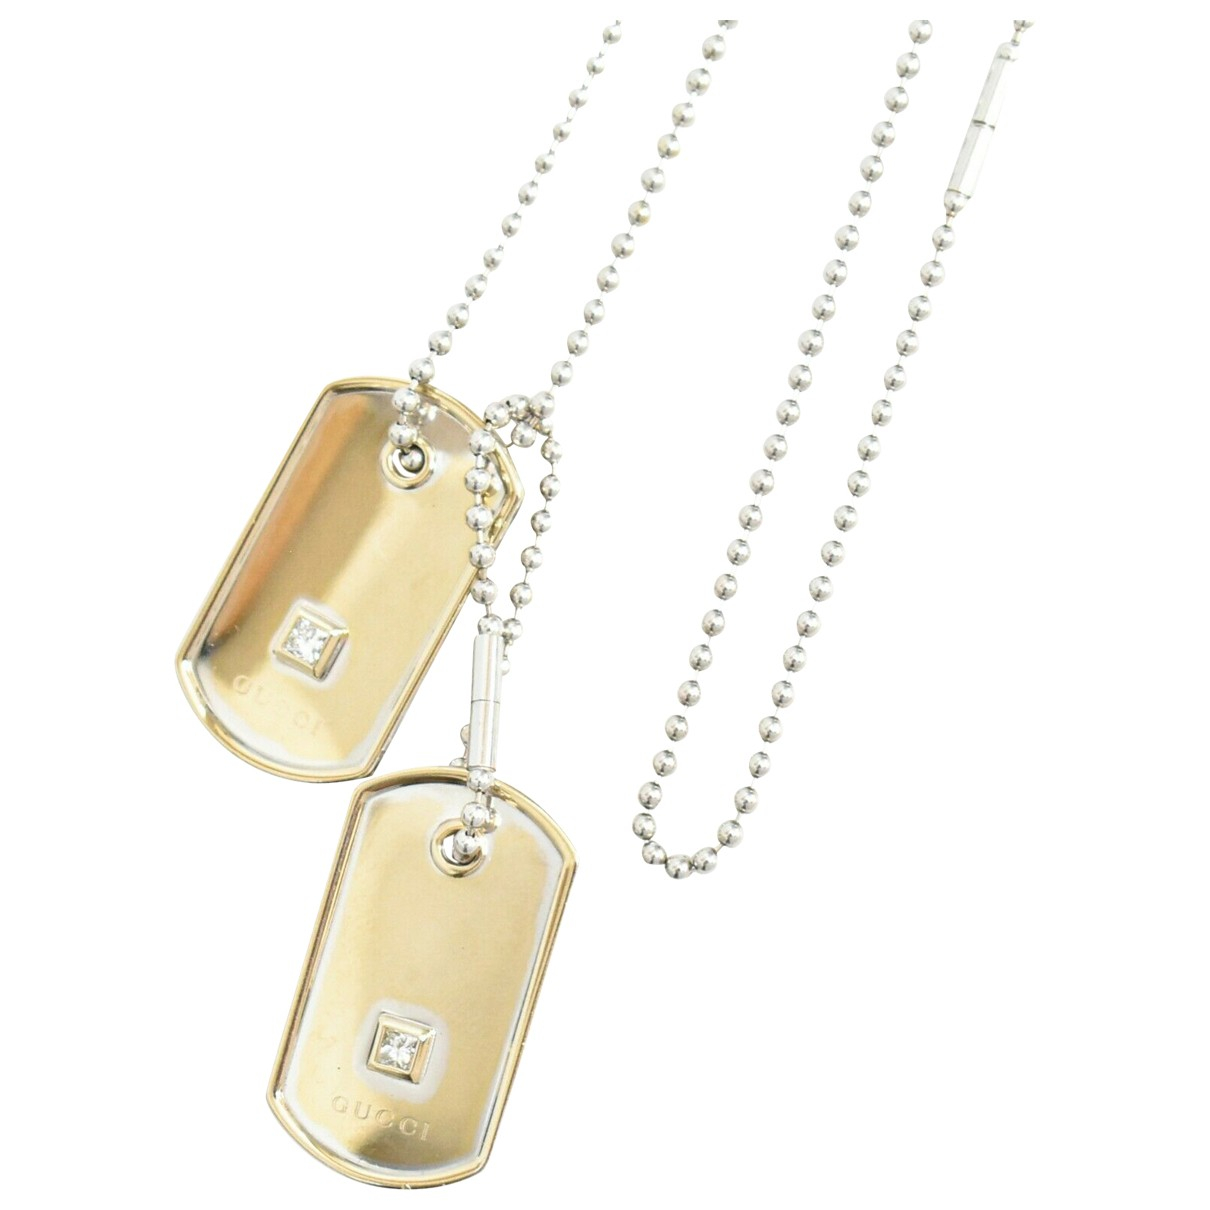 Gucci \N Yellow Metal necklace for Women \N